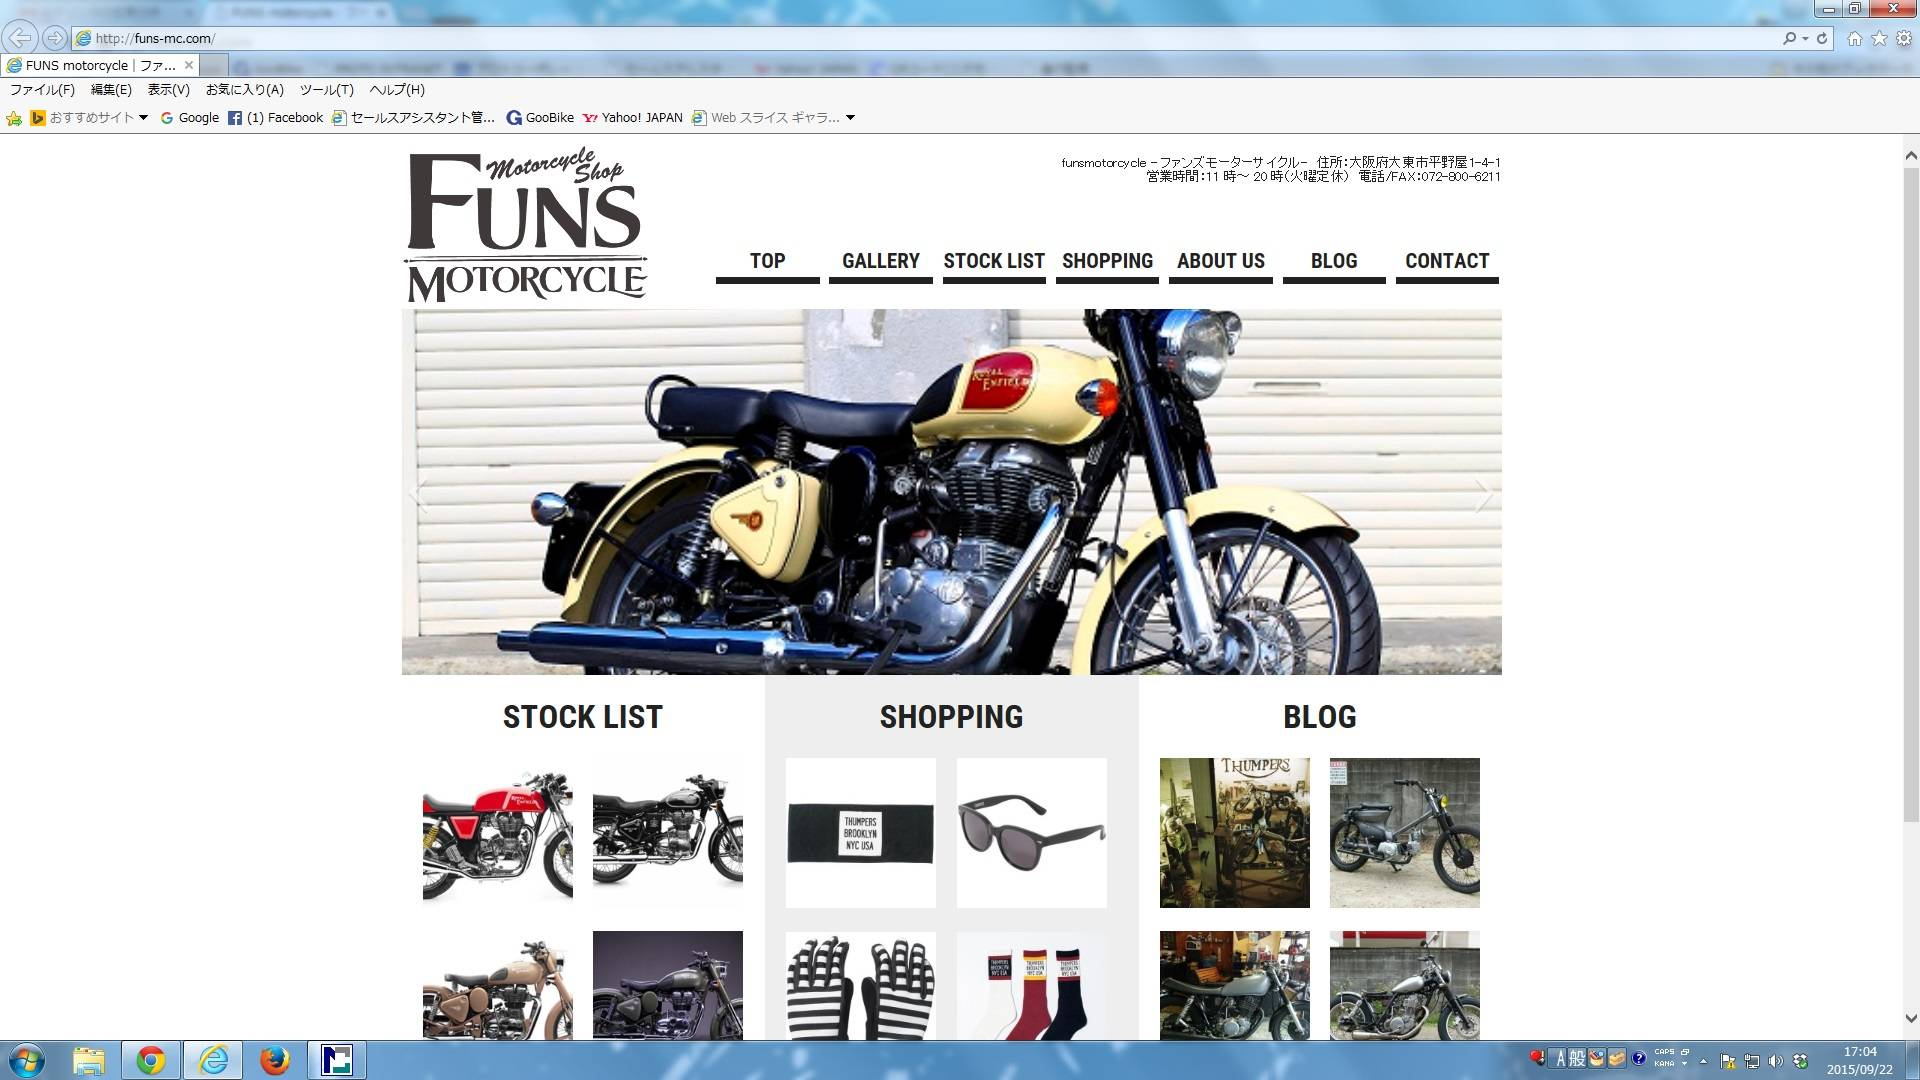 Funs motorcycle